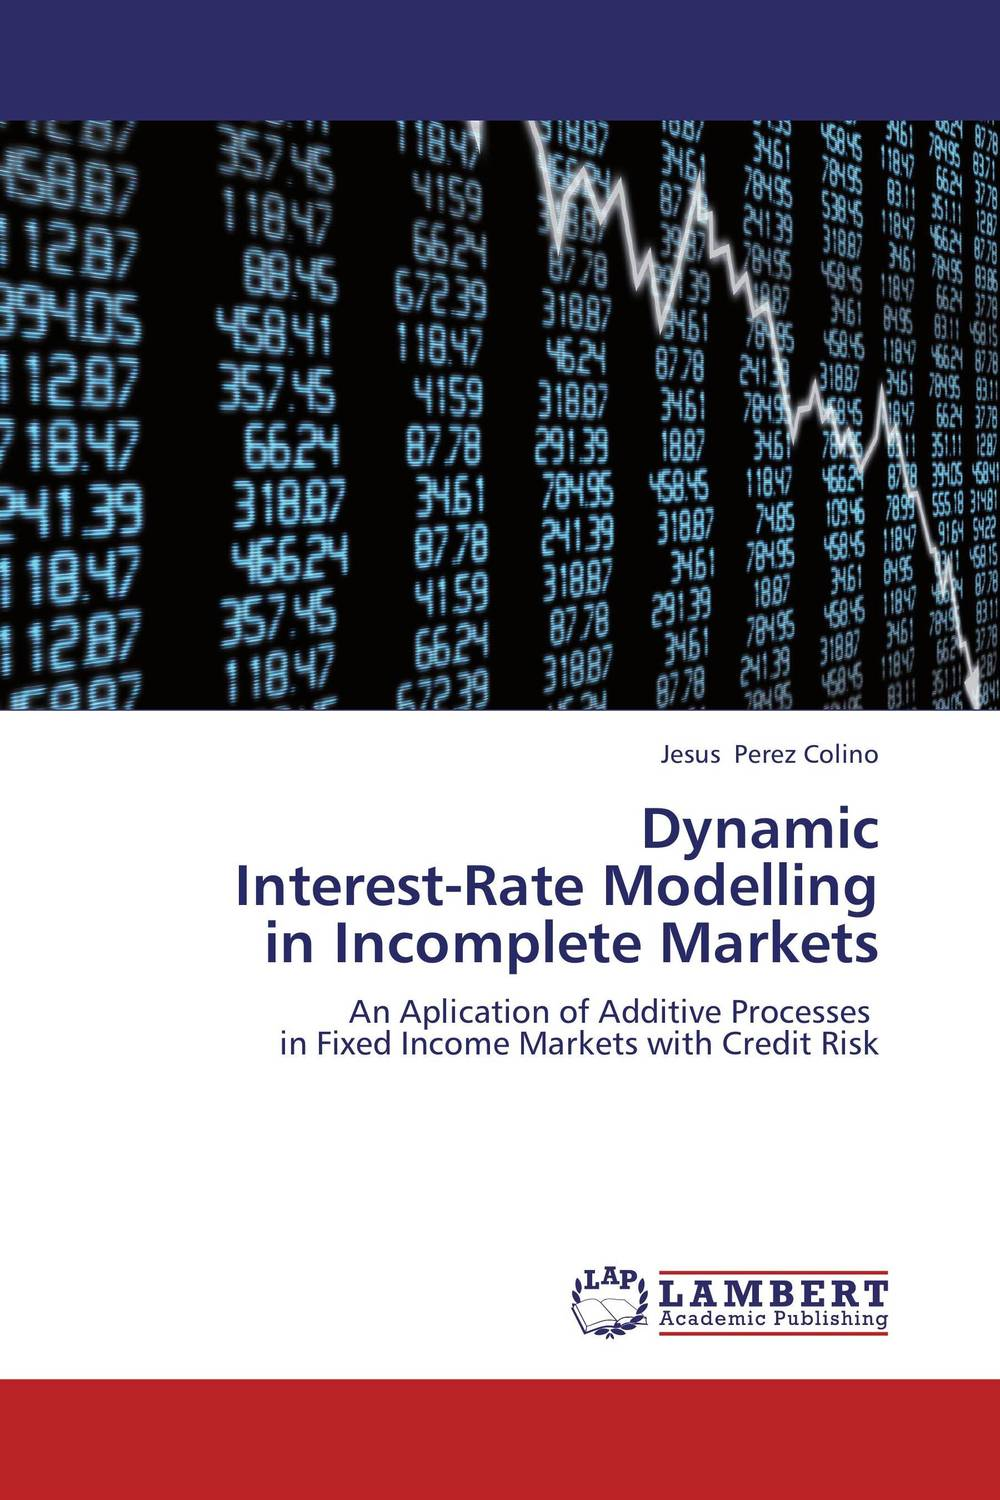 Dynamic Interest-Rate Modelling in Incomplete Markets thomas kirchner merger arbitrage how to profit from global event driven arbitrage